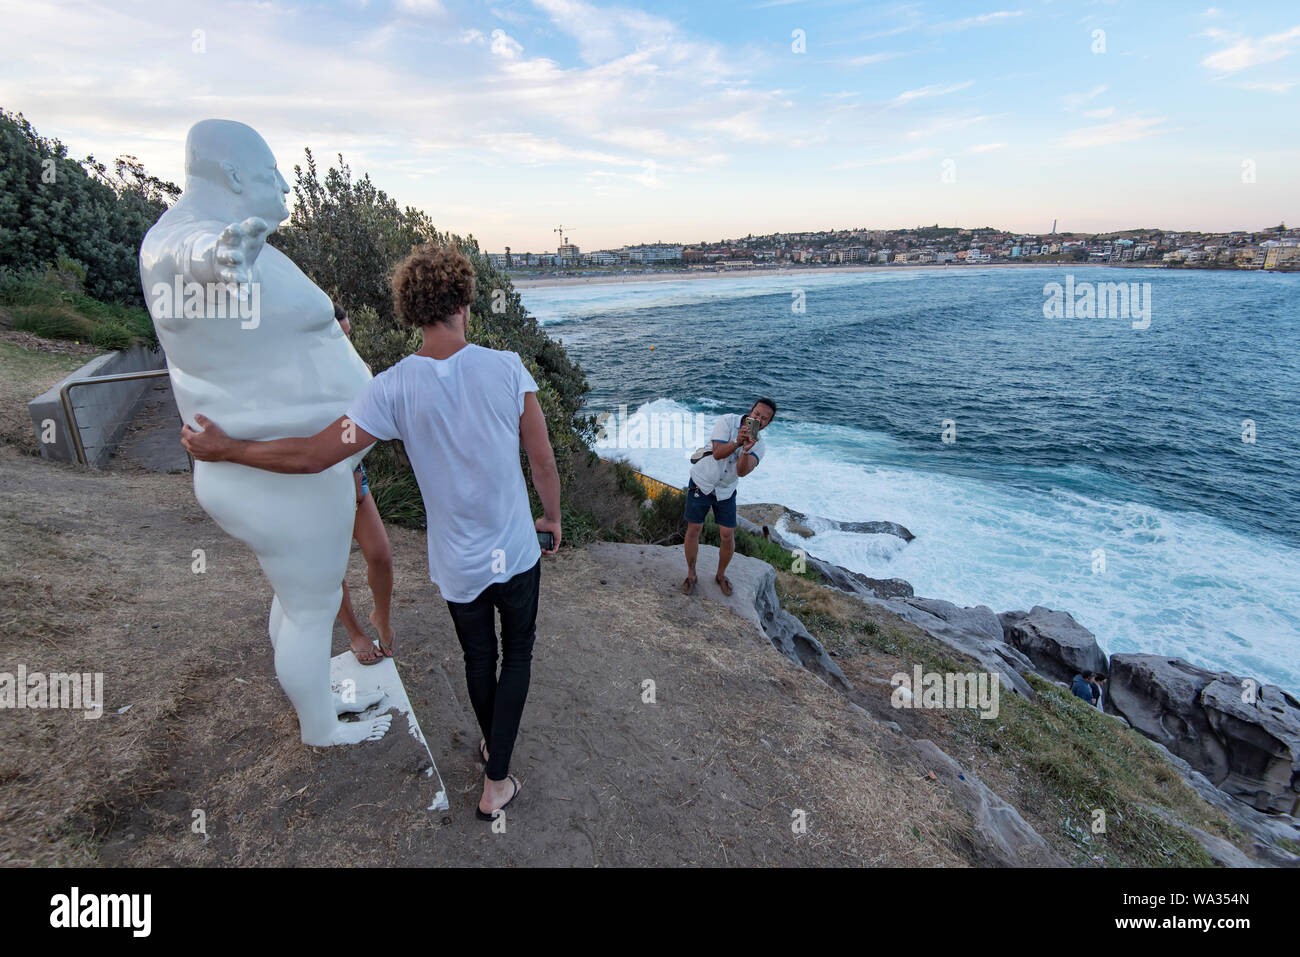 People interacting with exhibits at 20th Sculpture by the Sea exhibition in November 2016 at Sydney's Bondi Beach in Australia Stock Photo